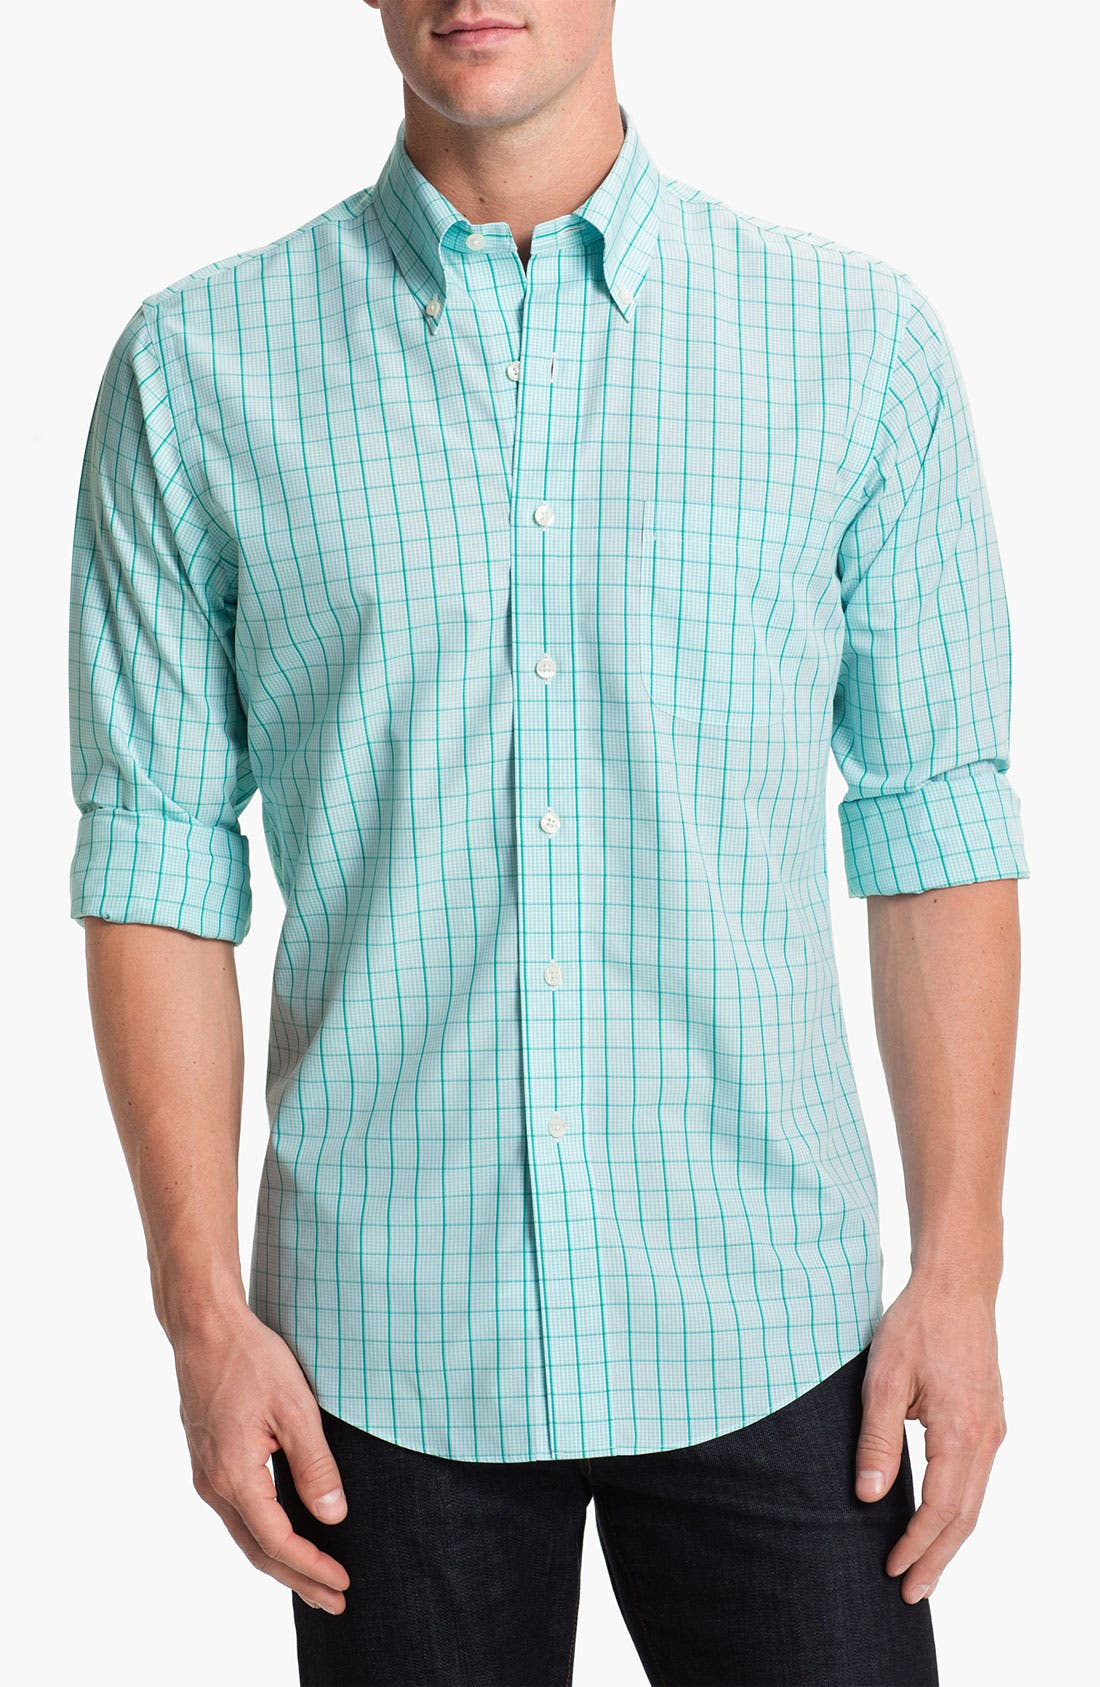 Alternate Image 1 Selected - Brooks Brothers Checkered Sport Shirt